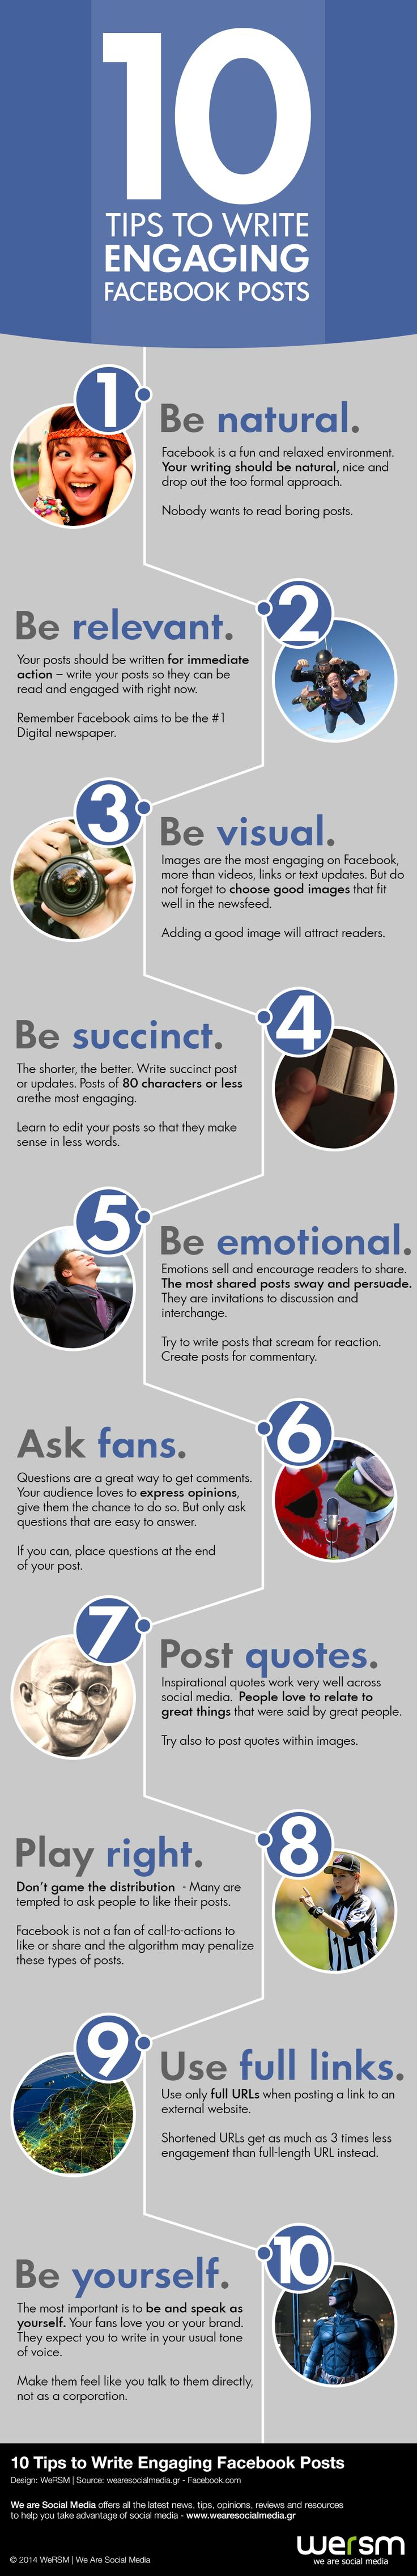 10 Tips To Maximize Your Facebook Engagement - infographic